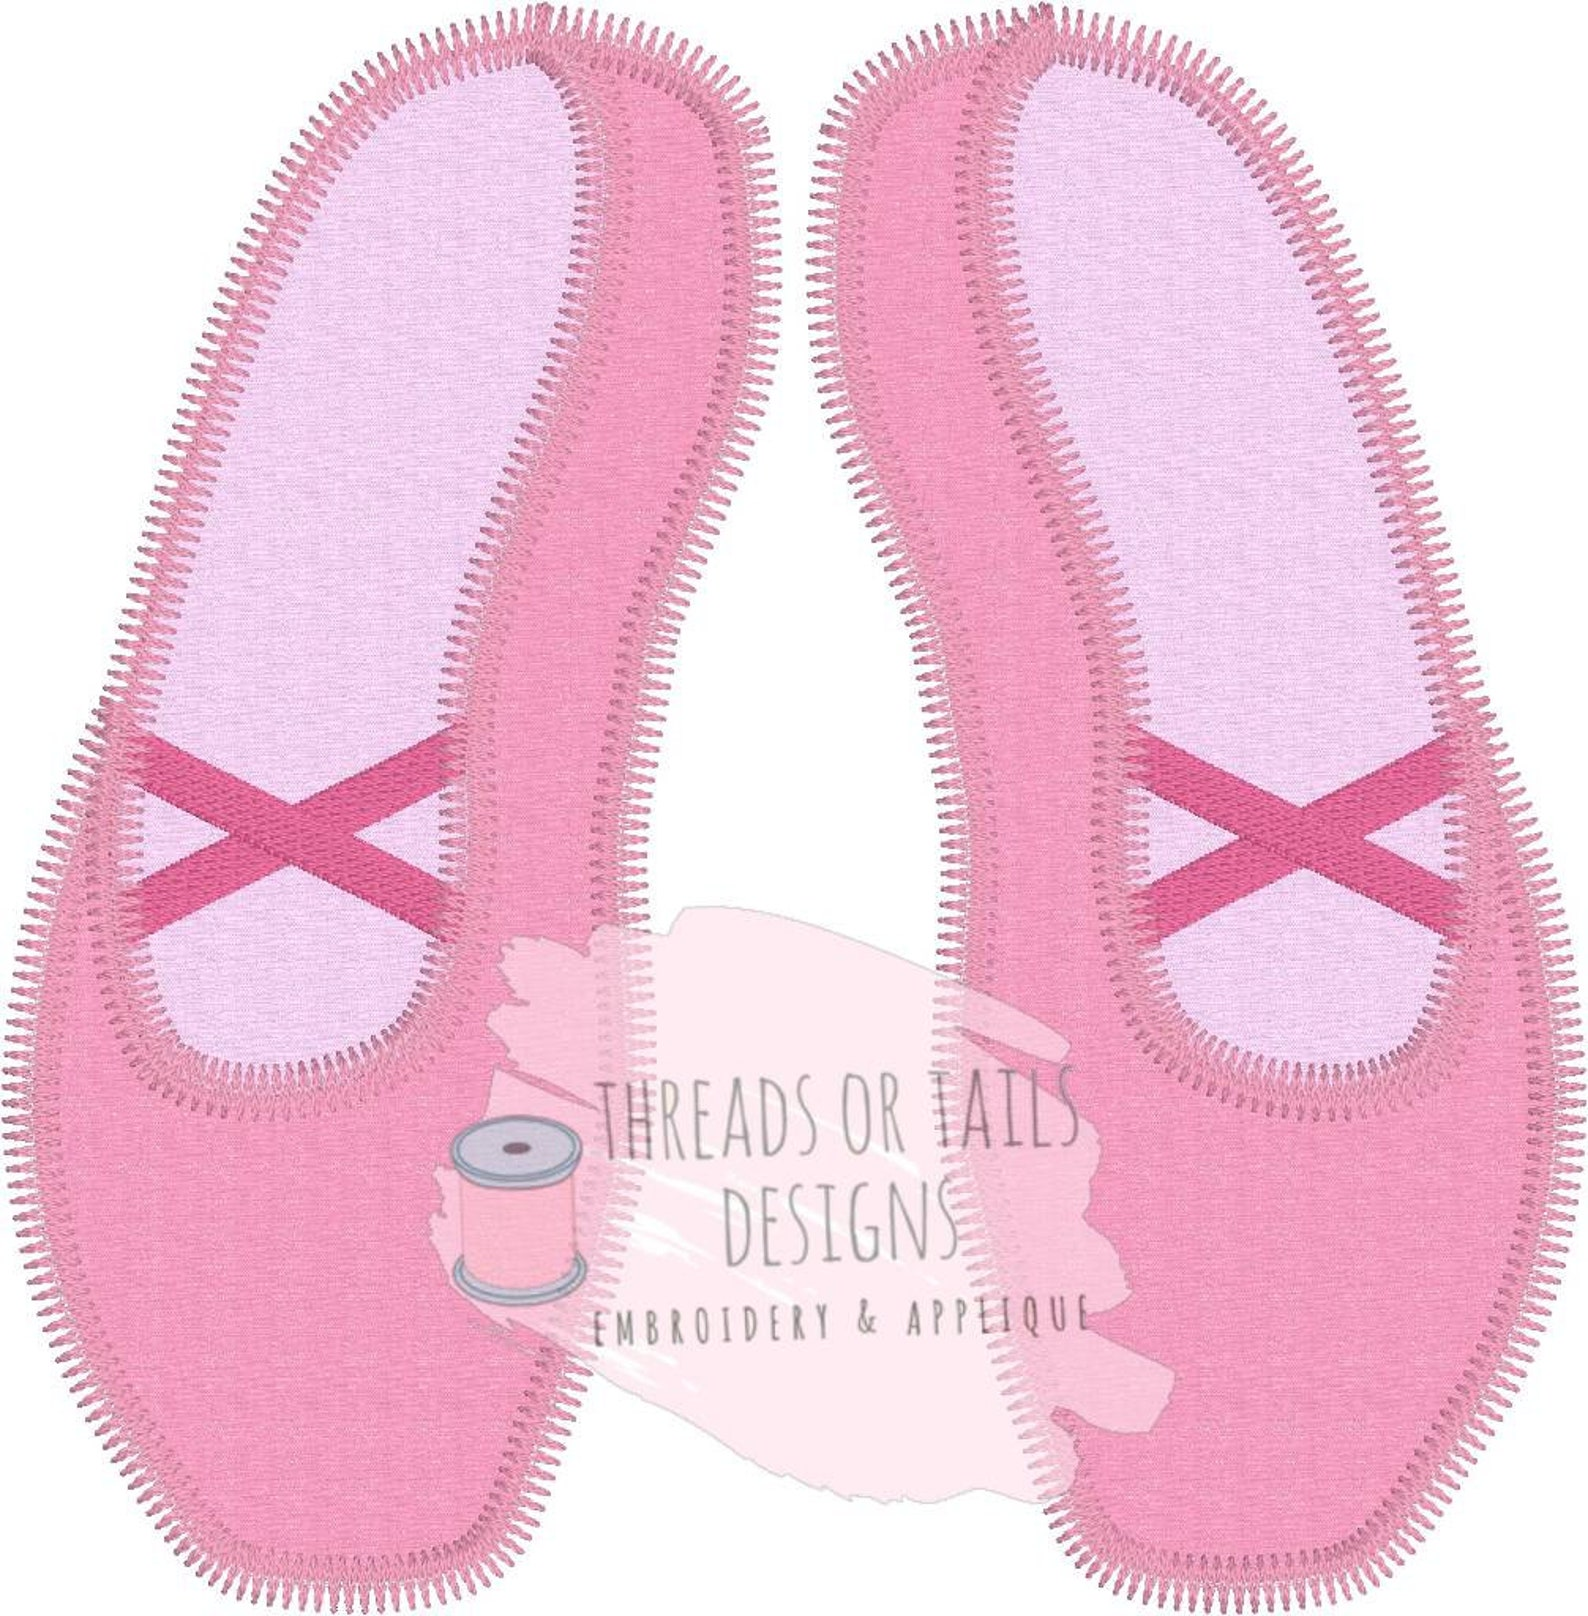 ballet shoes applique - ballerina shoes applique - pointe shoes design - ballet applique - ballet shoes design